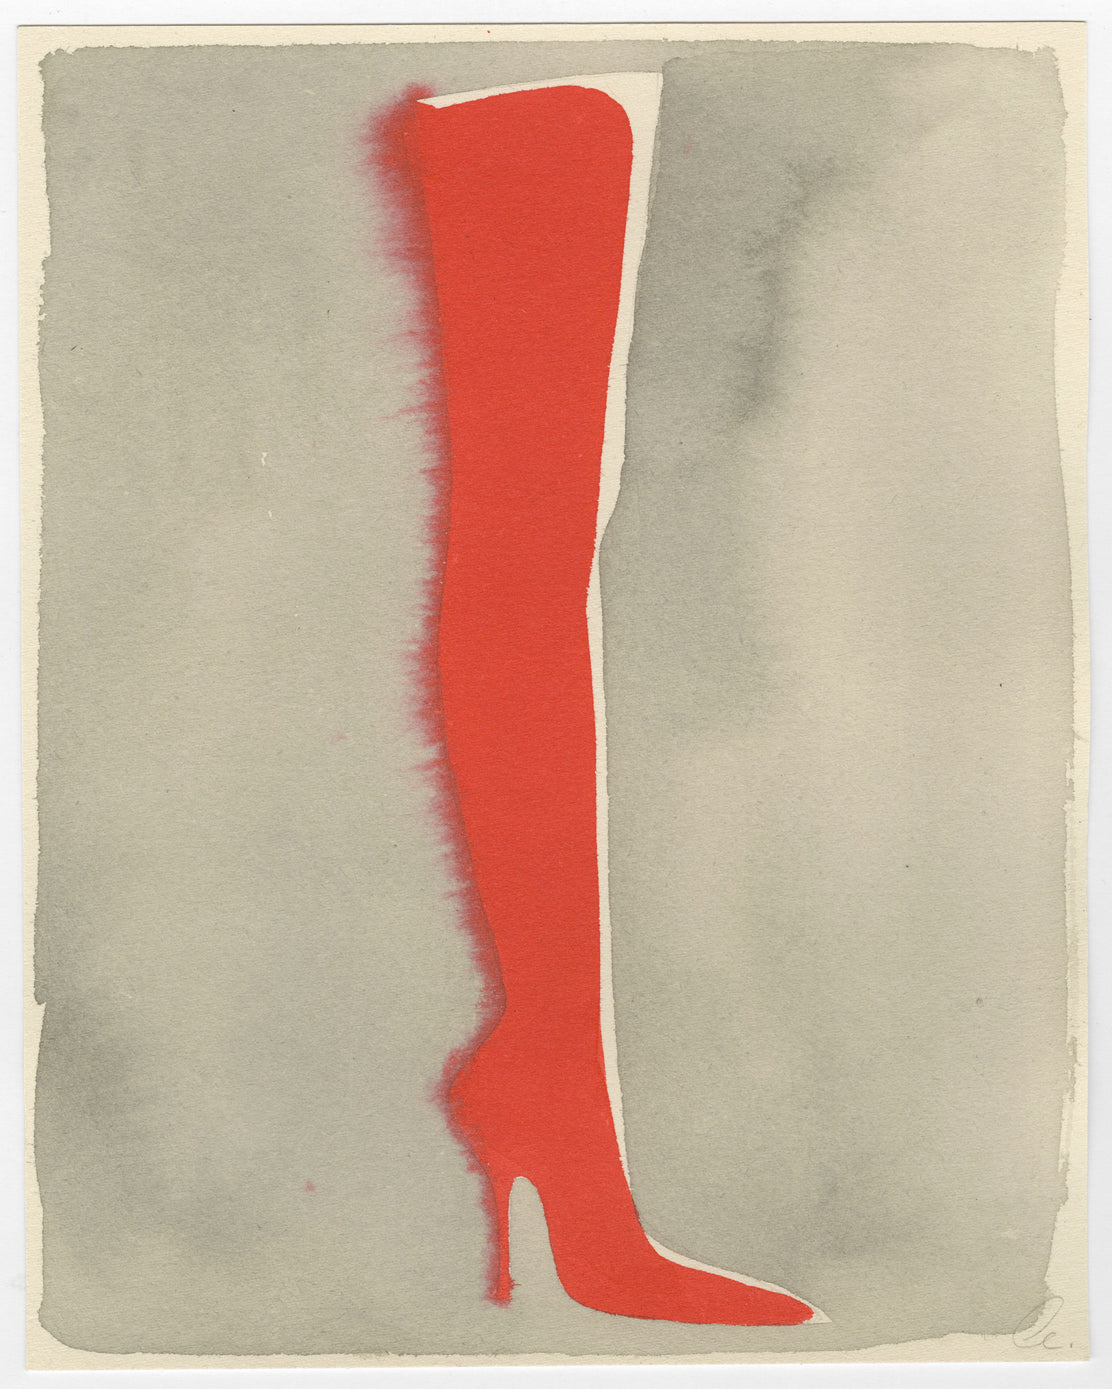 Cecilia Carlstedt - Red, Black, Grey #4